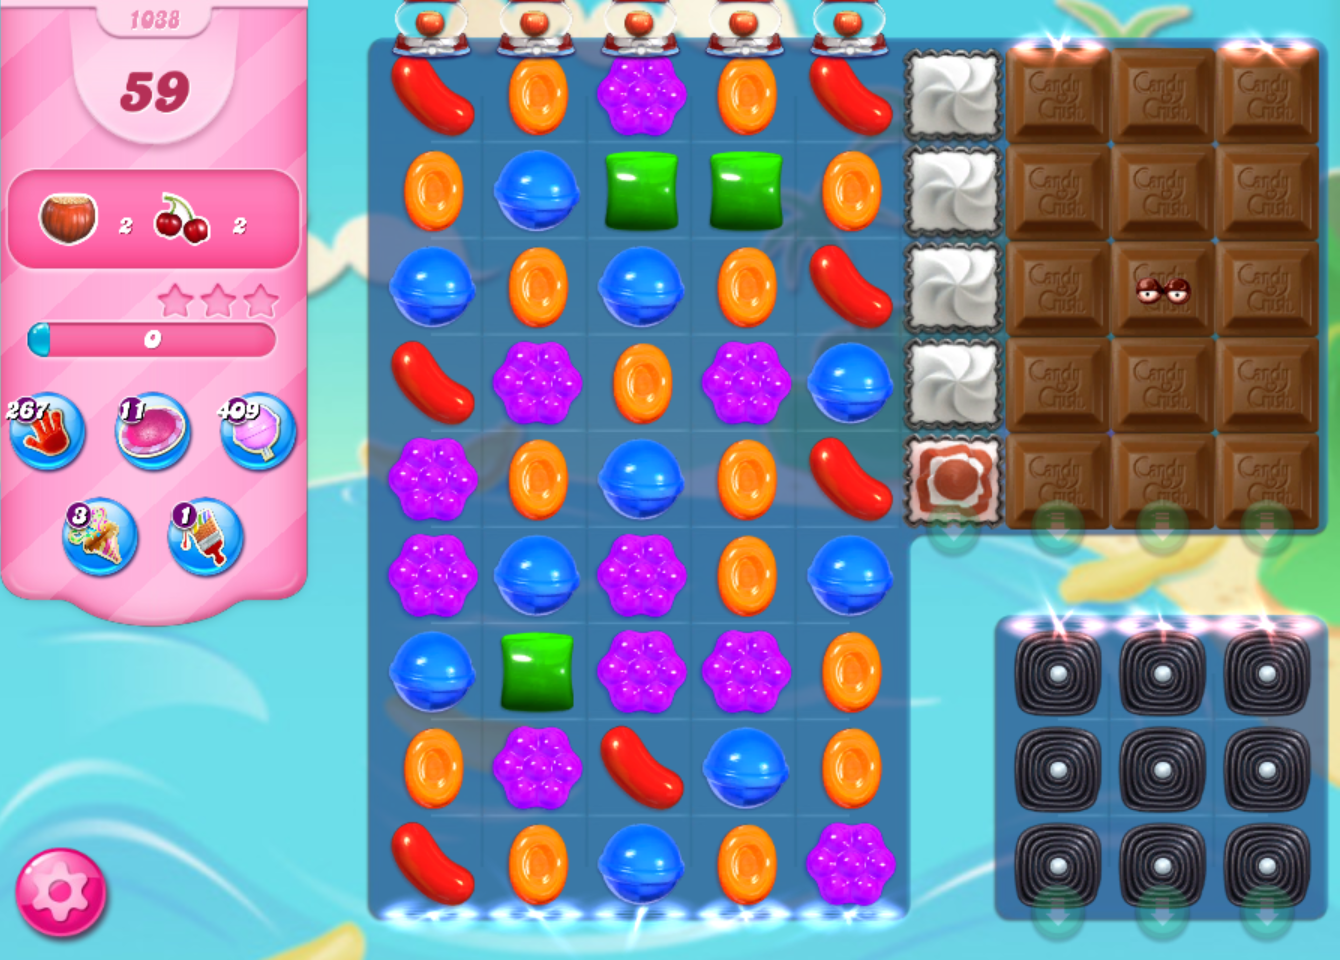 How to make chocolate grow in candy crush